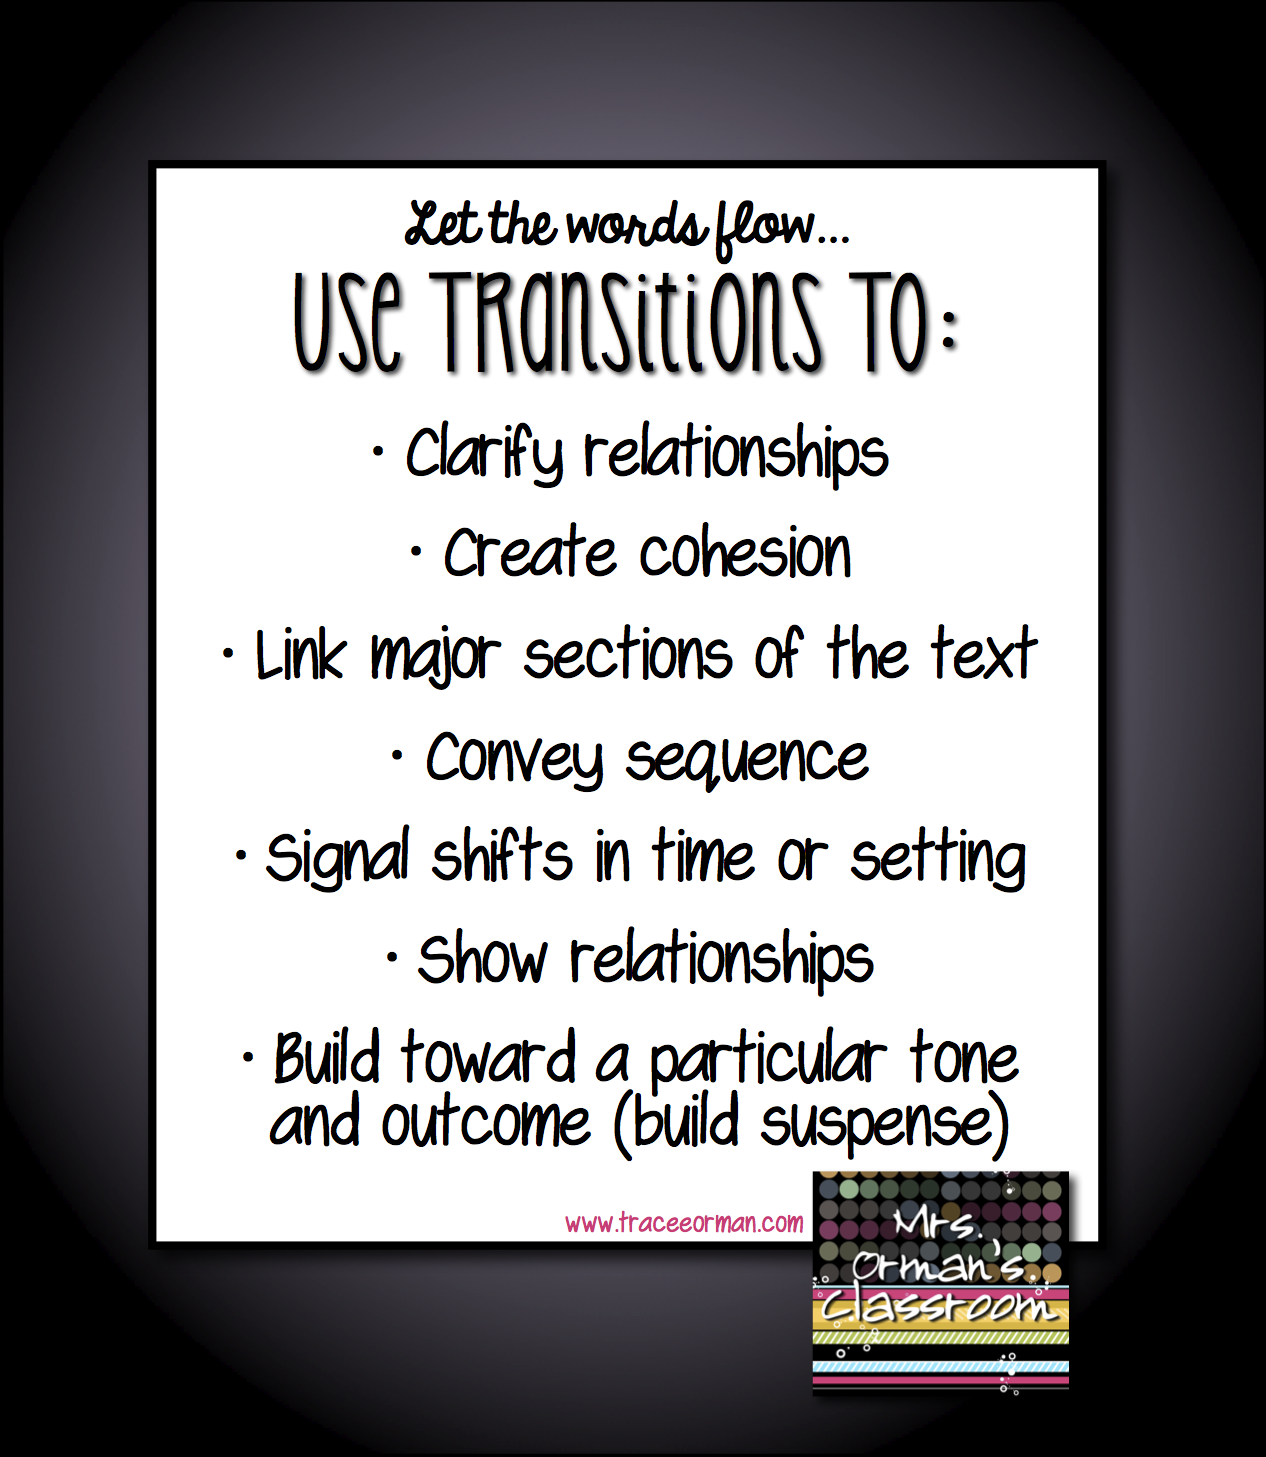 mrs orman s classroom common core tips using transitional words use transitions anchor chart traceeorman com